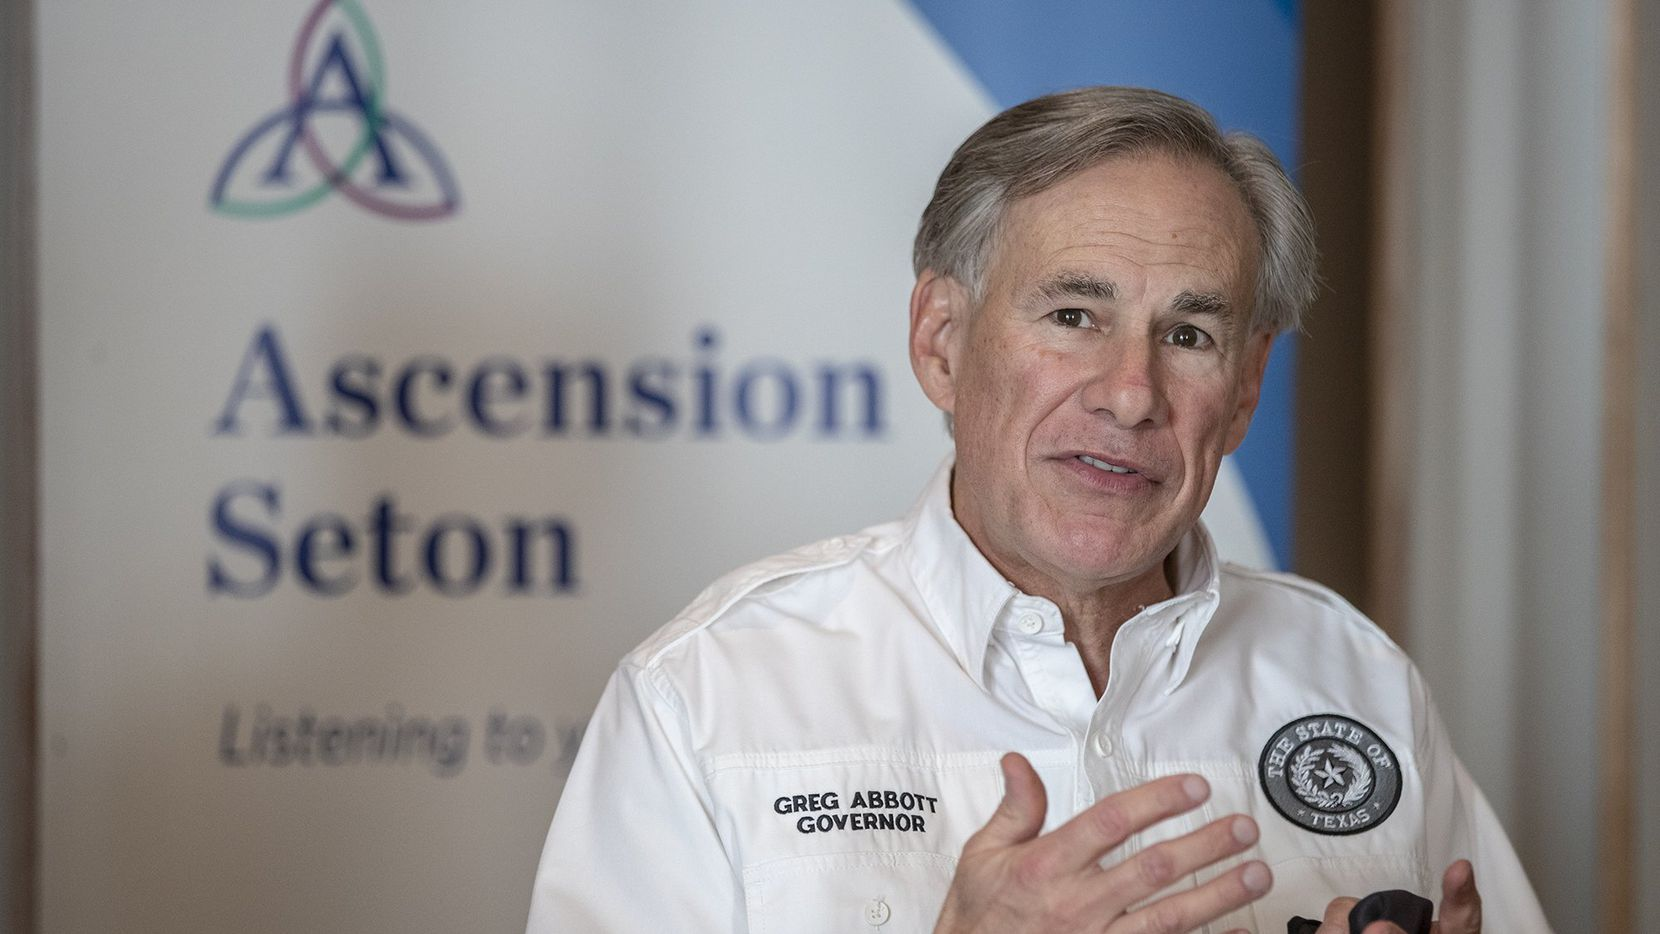 Gov. Greg Abbott speaks  to the local media before receiving a dose of a Pfizer-BioNtech COVID-19 vaccine at the Ascension Seton Medical Center on Tuesday, December 22, 2020.